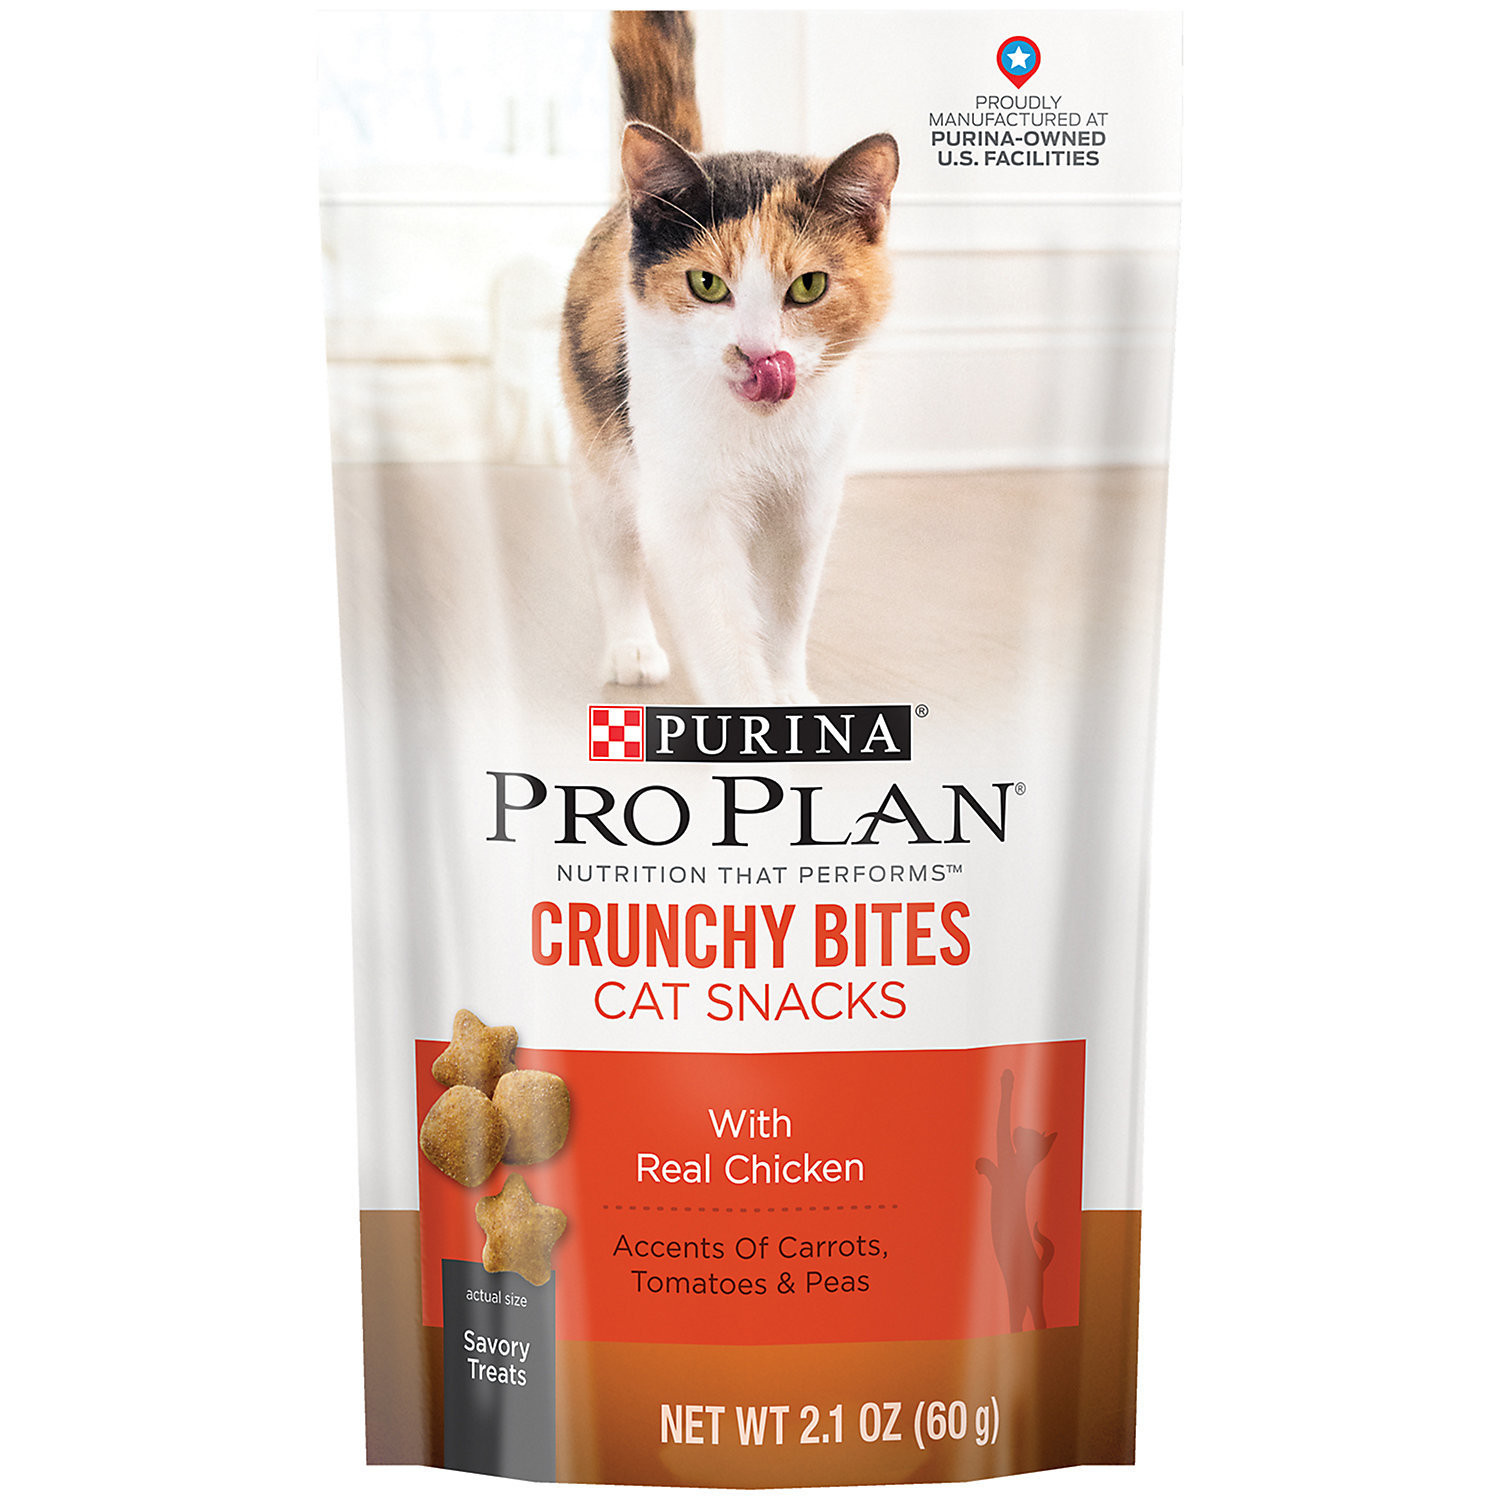 Purina Pro Plan Crunchy Bites with Real Salmon Dry Cat Treats, 2.1 Oz. (5/19) (T.B8)